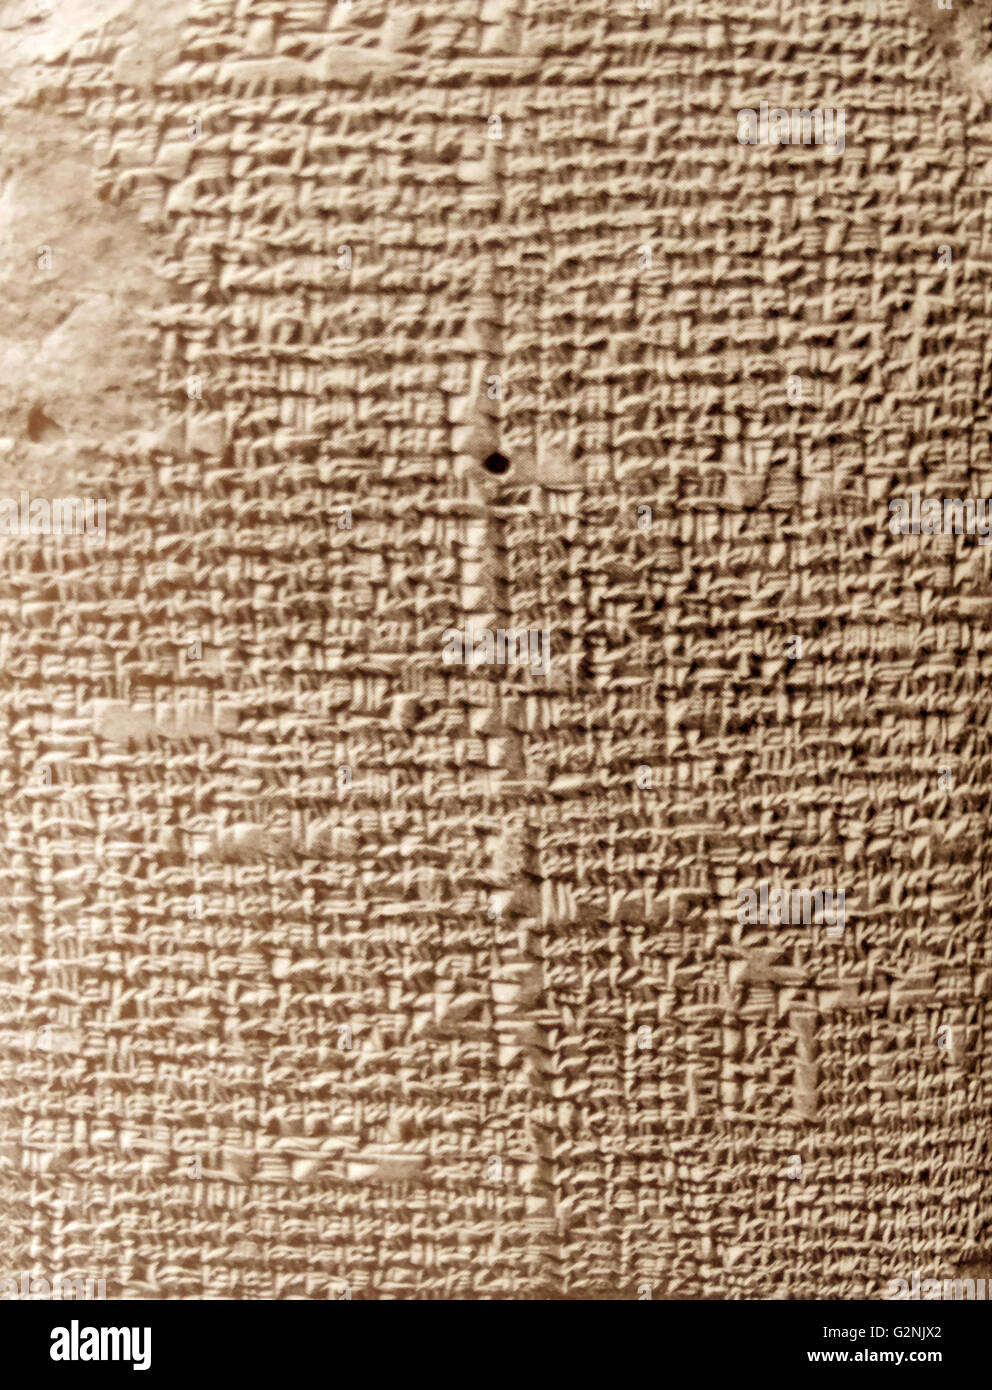 A Babylonian treatise on astronomy. - Stock Image